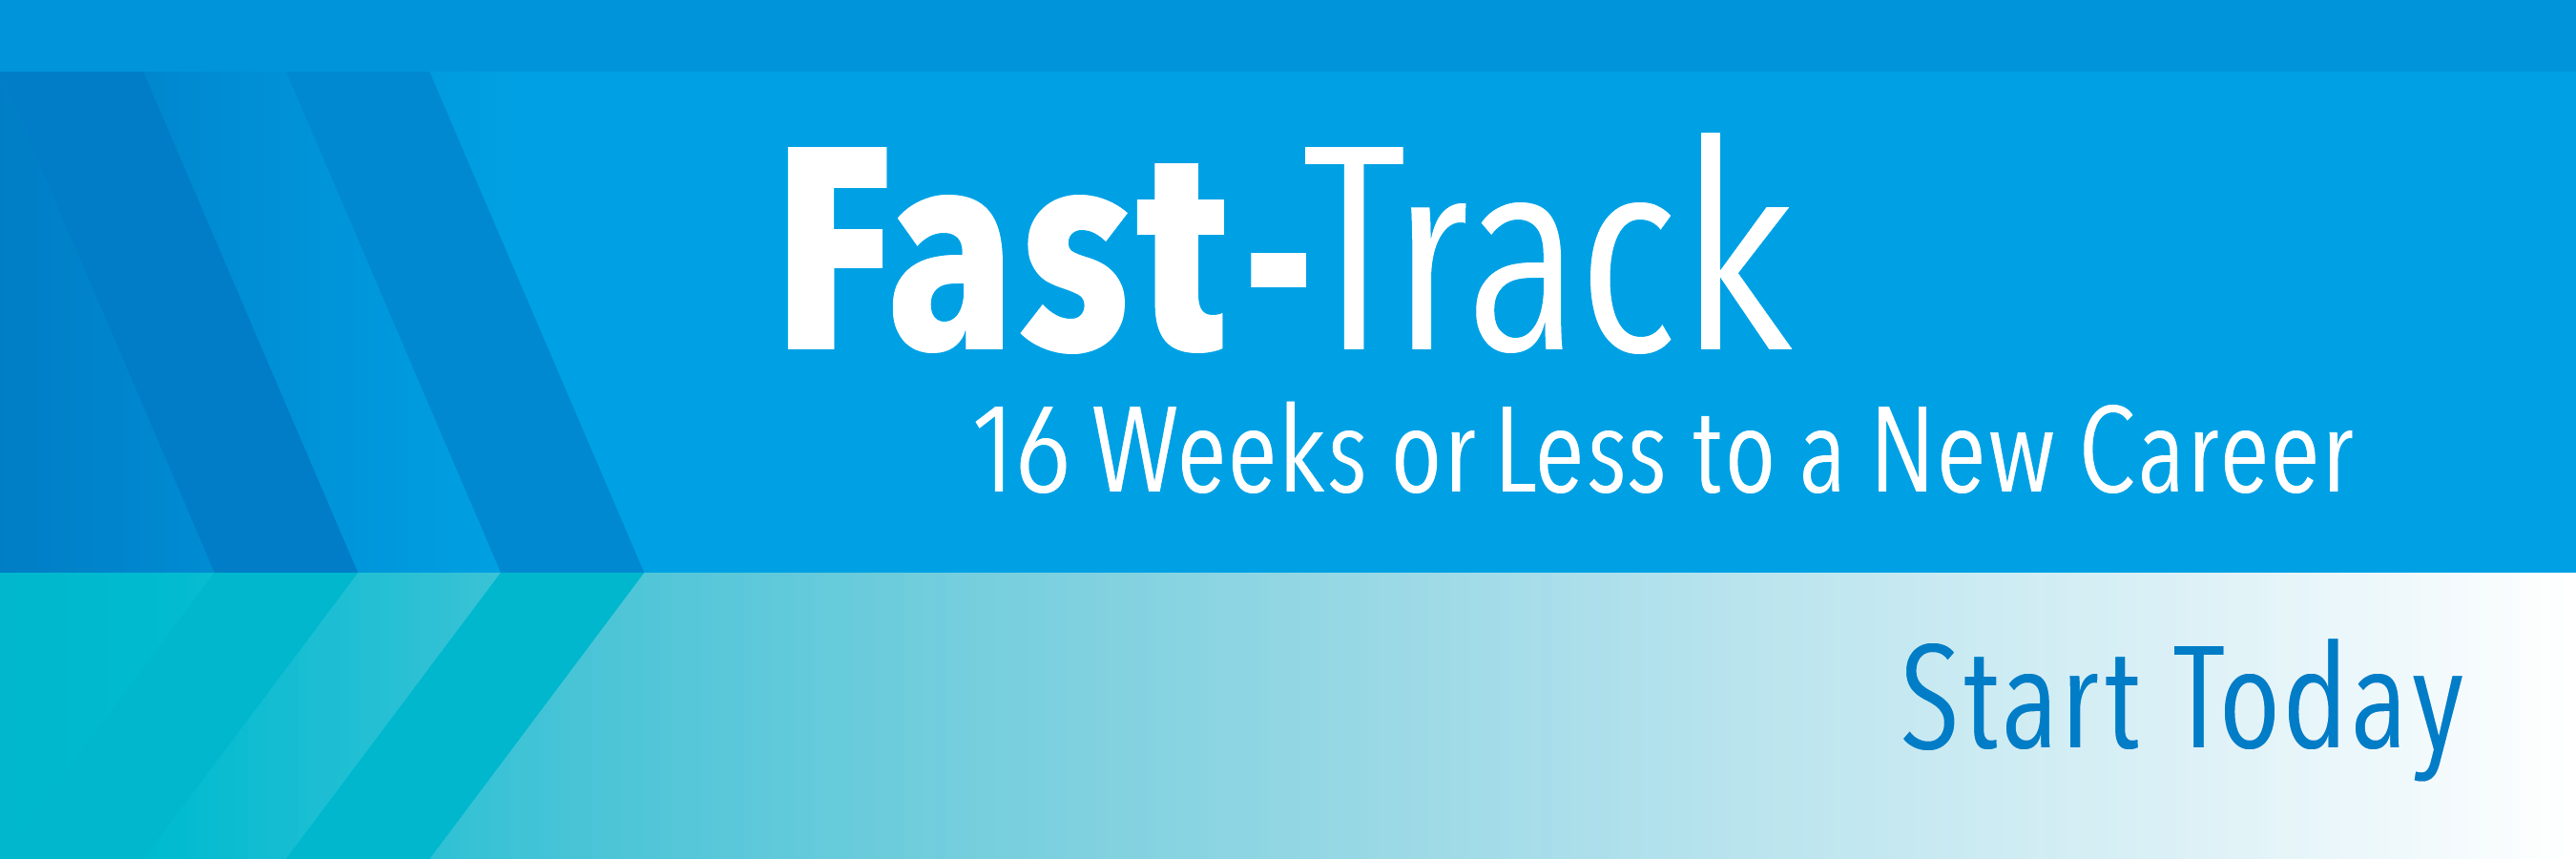 Fast-Track. 16 Weeks or Less to a new career